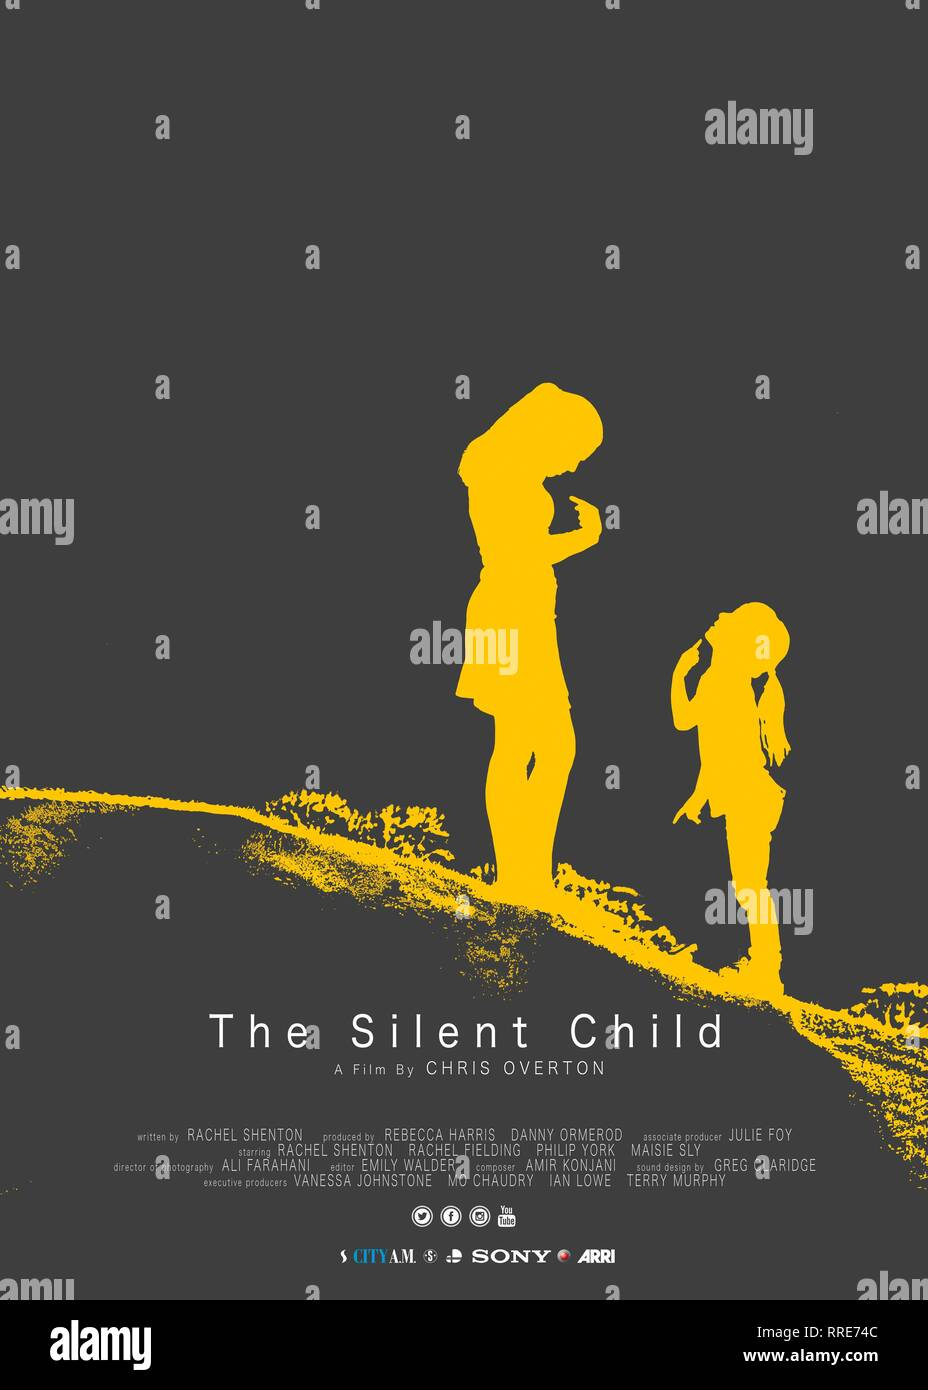 THE SILENT CHILD, MOVIE POSTER, 2017 - Stock Image